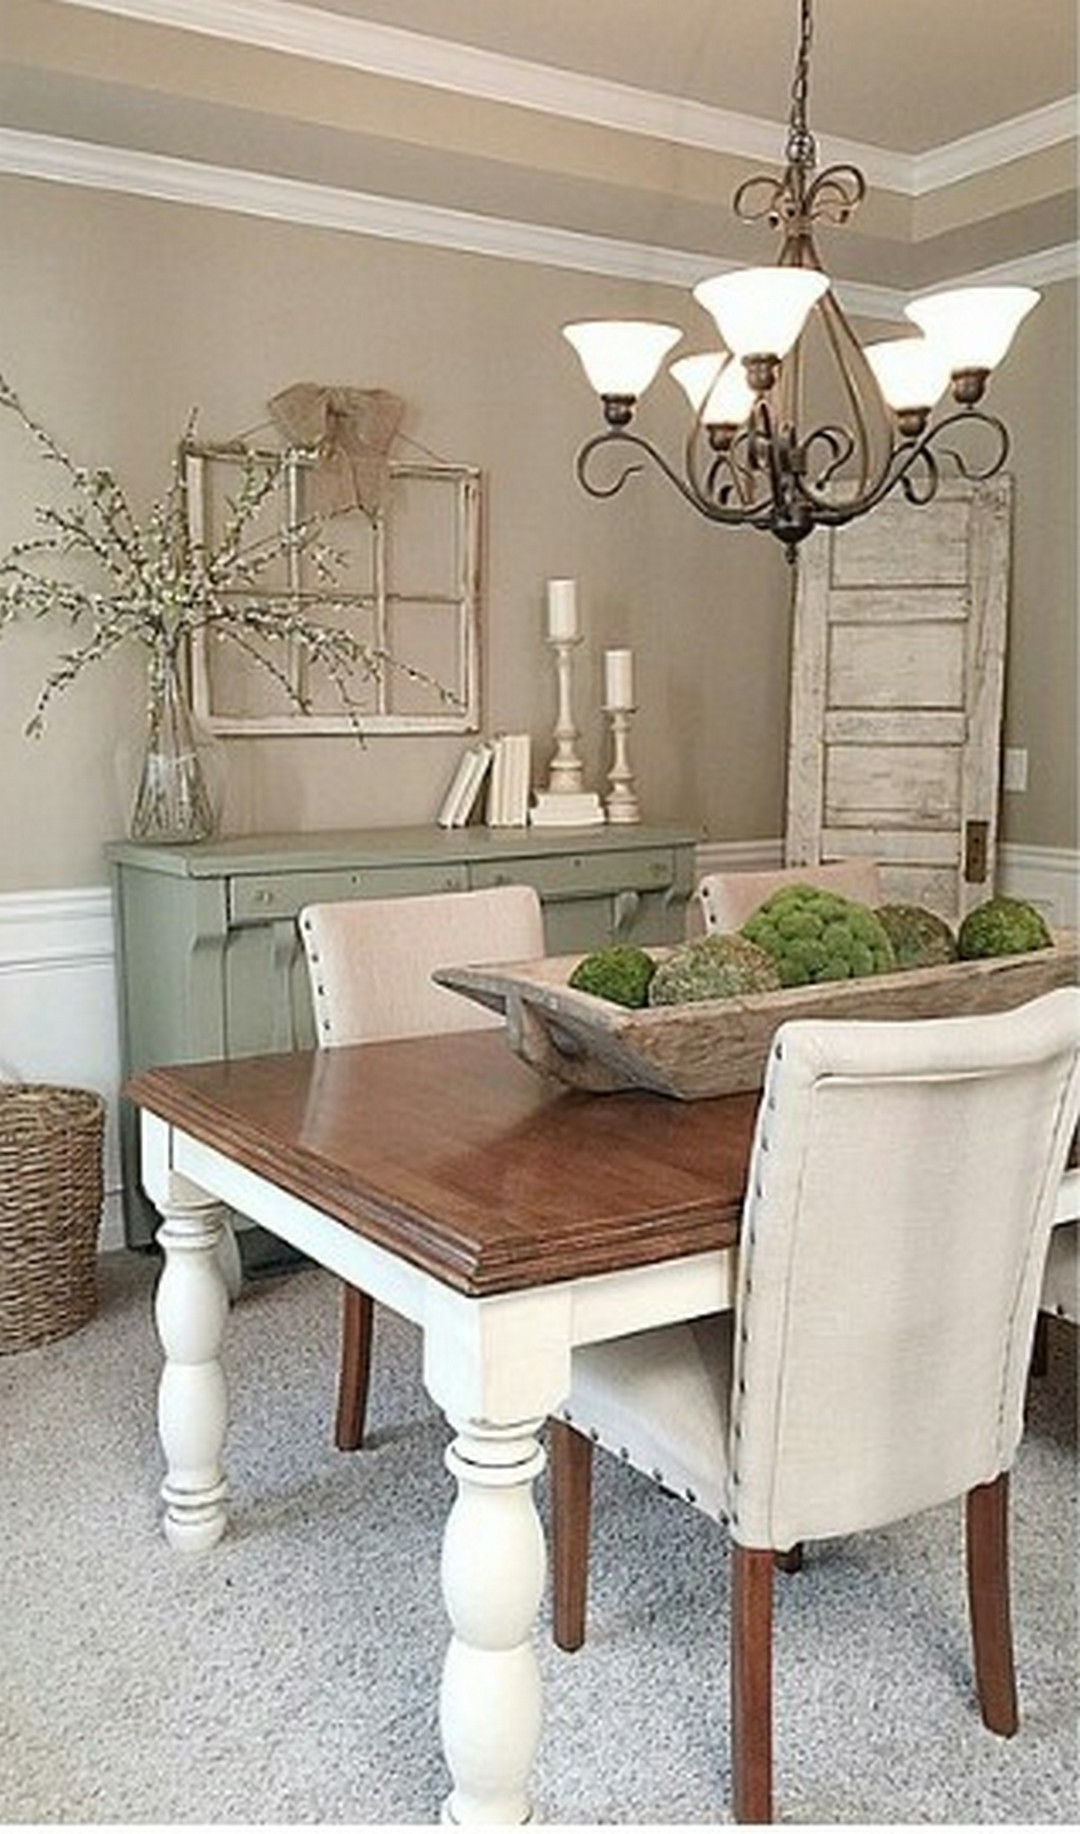 Most Popular Modern Rustic Farmhouse Dining Room Style Home – Saltandblues With Regard To Small Rustic Look Dining Tables (View 12 of 25)